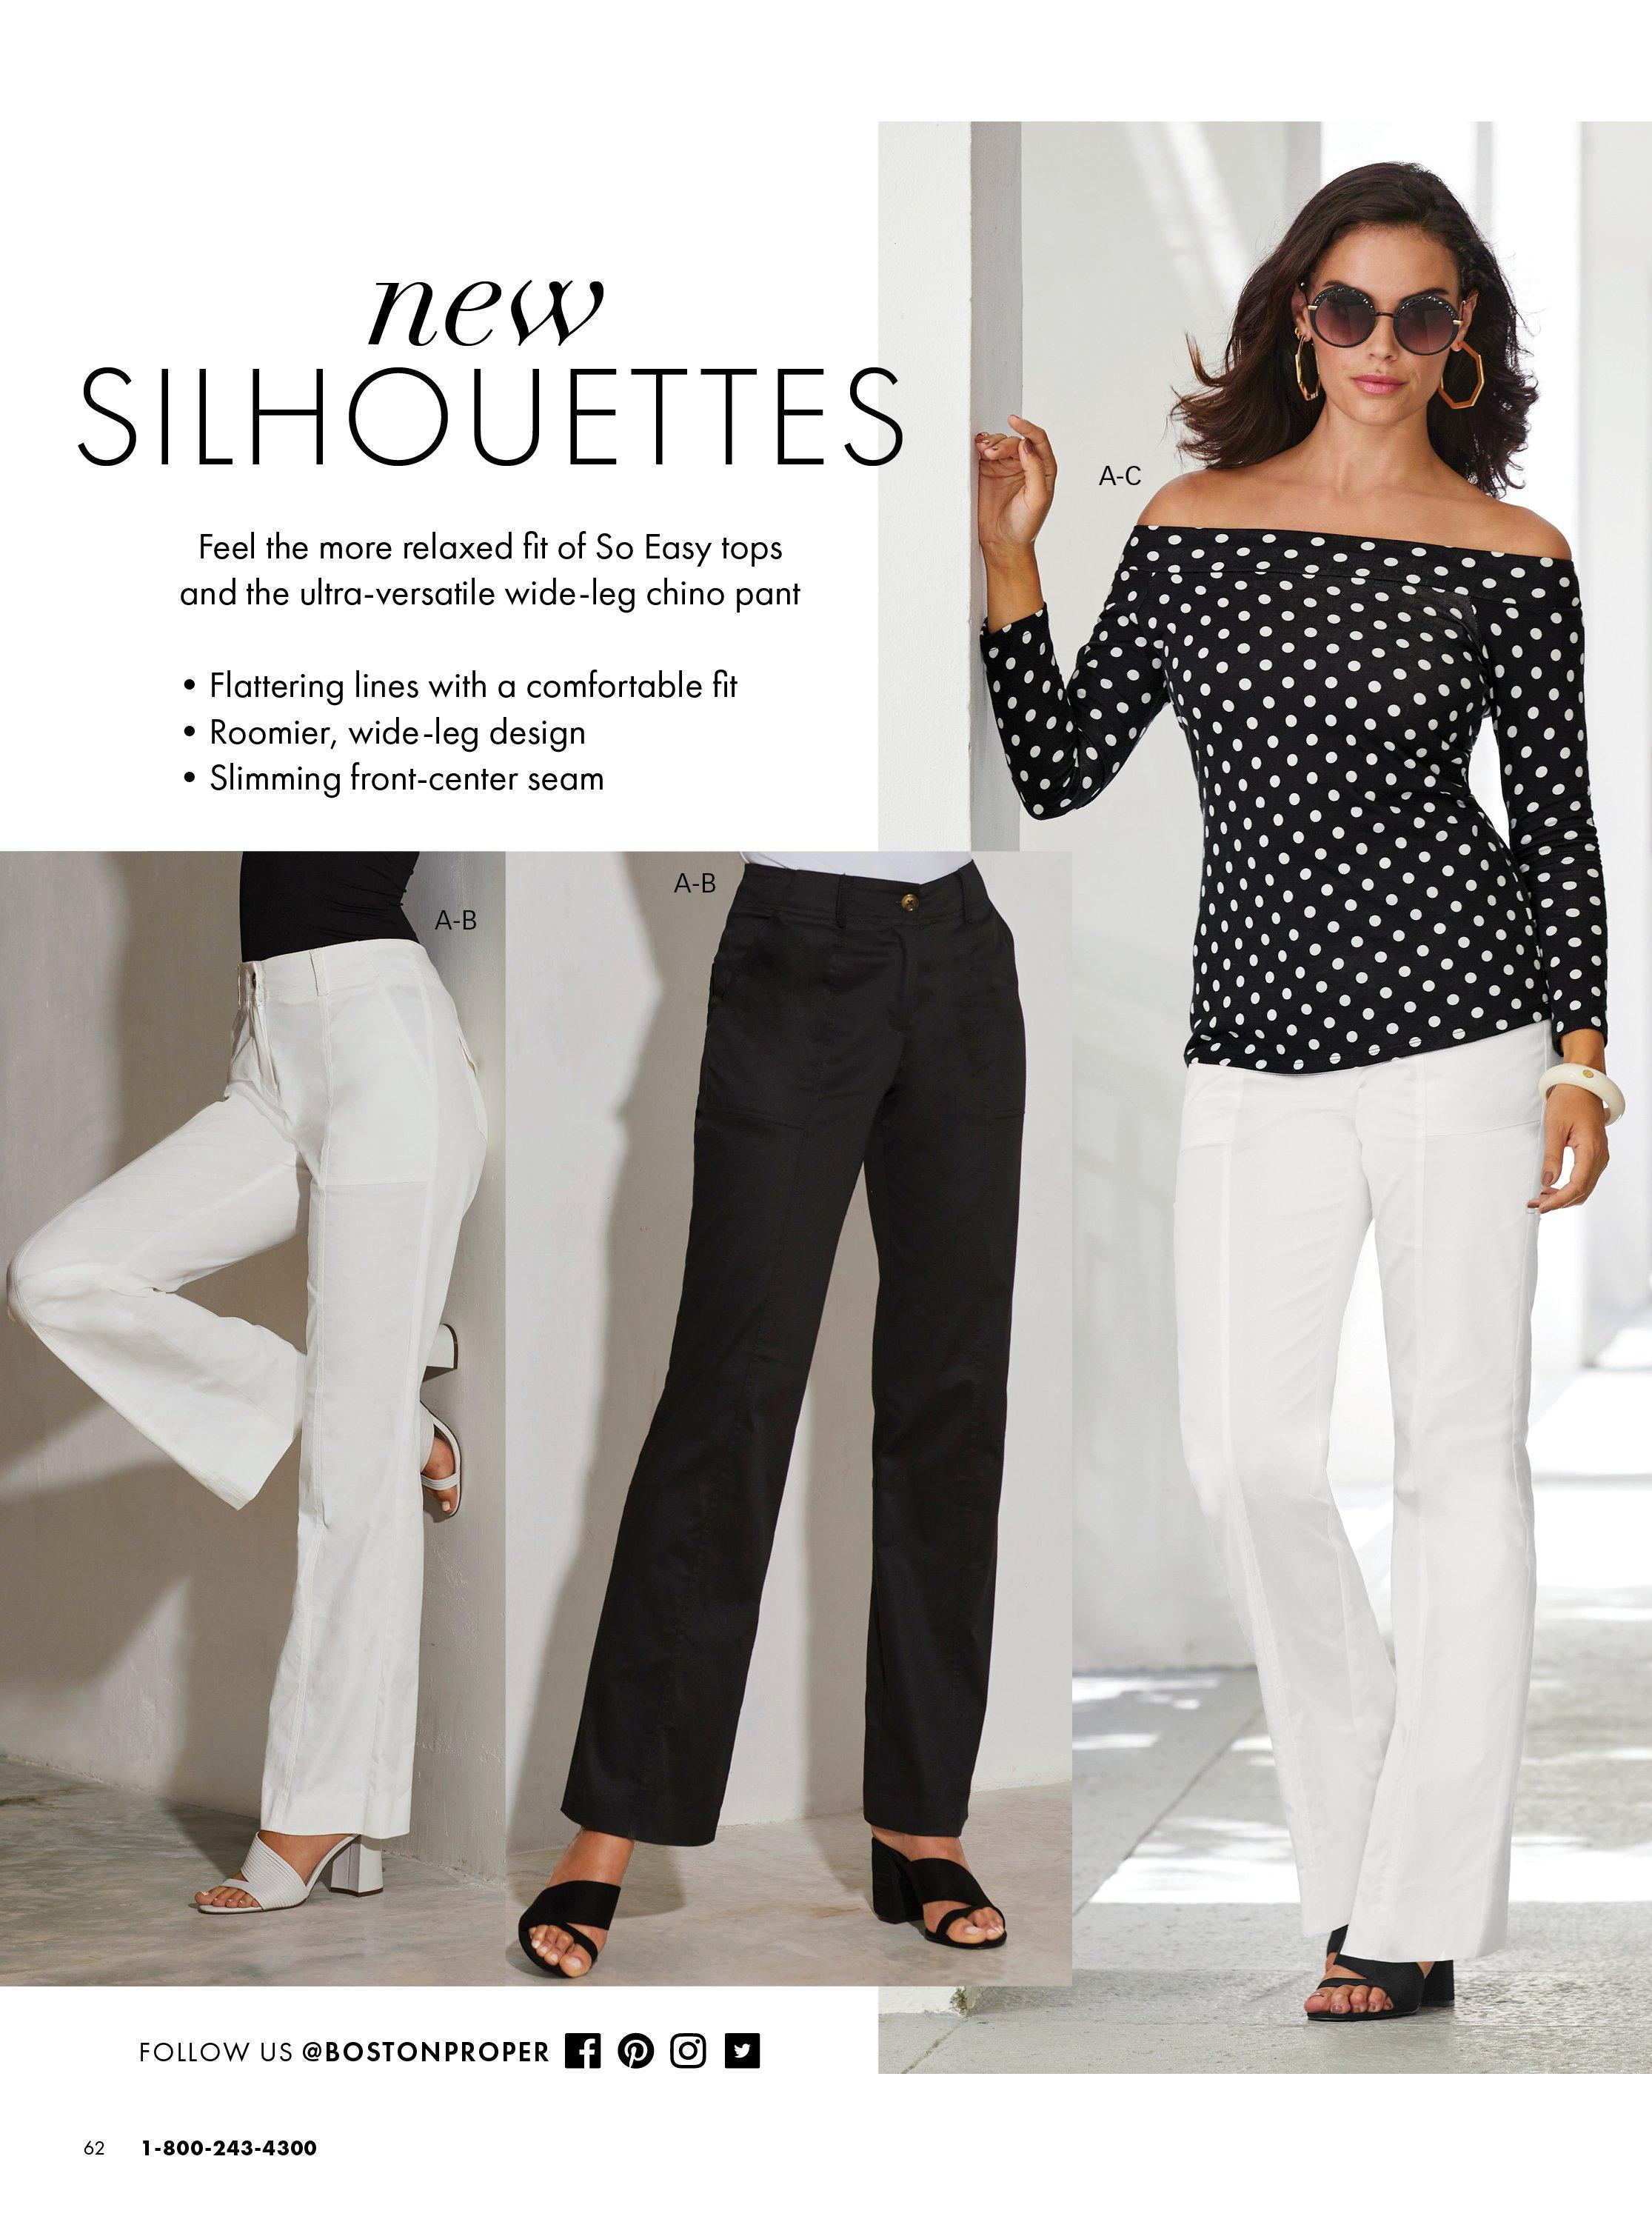 left panel showing chino pants in white and black. right model wearing a black and white polka dot off-the-shoulder long sleeve top, white chino pants, and black slides.